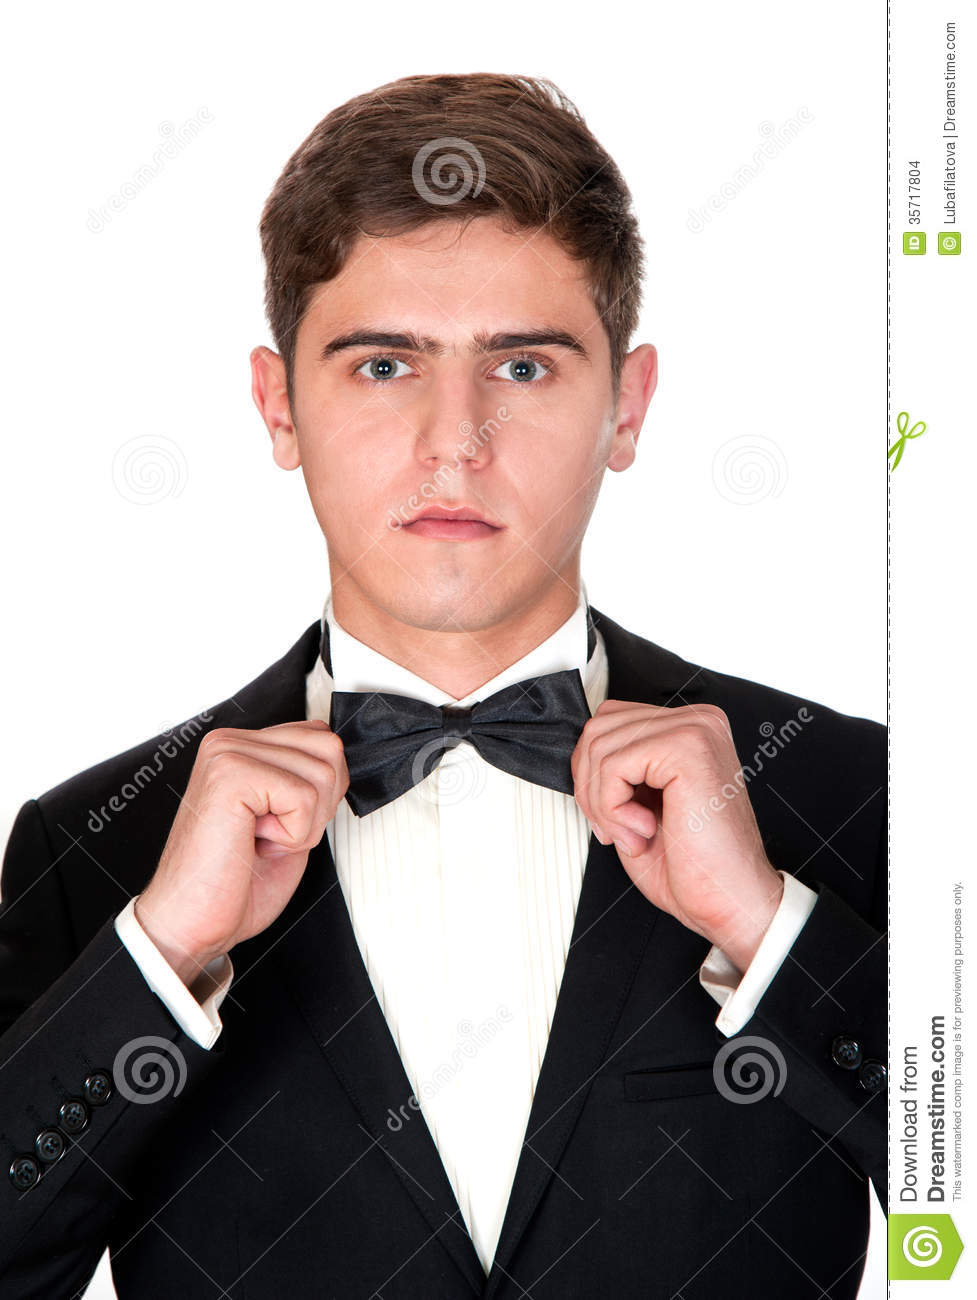 Man In A Black Suit Adjusts His Bow Tie Stock Images - Image: 35717804